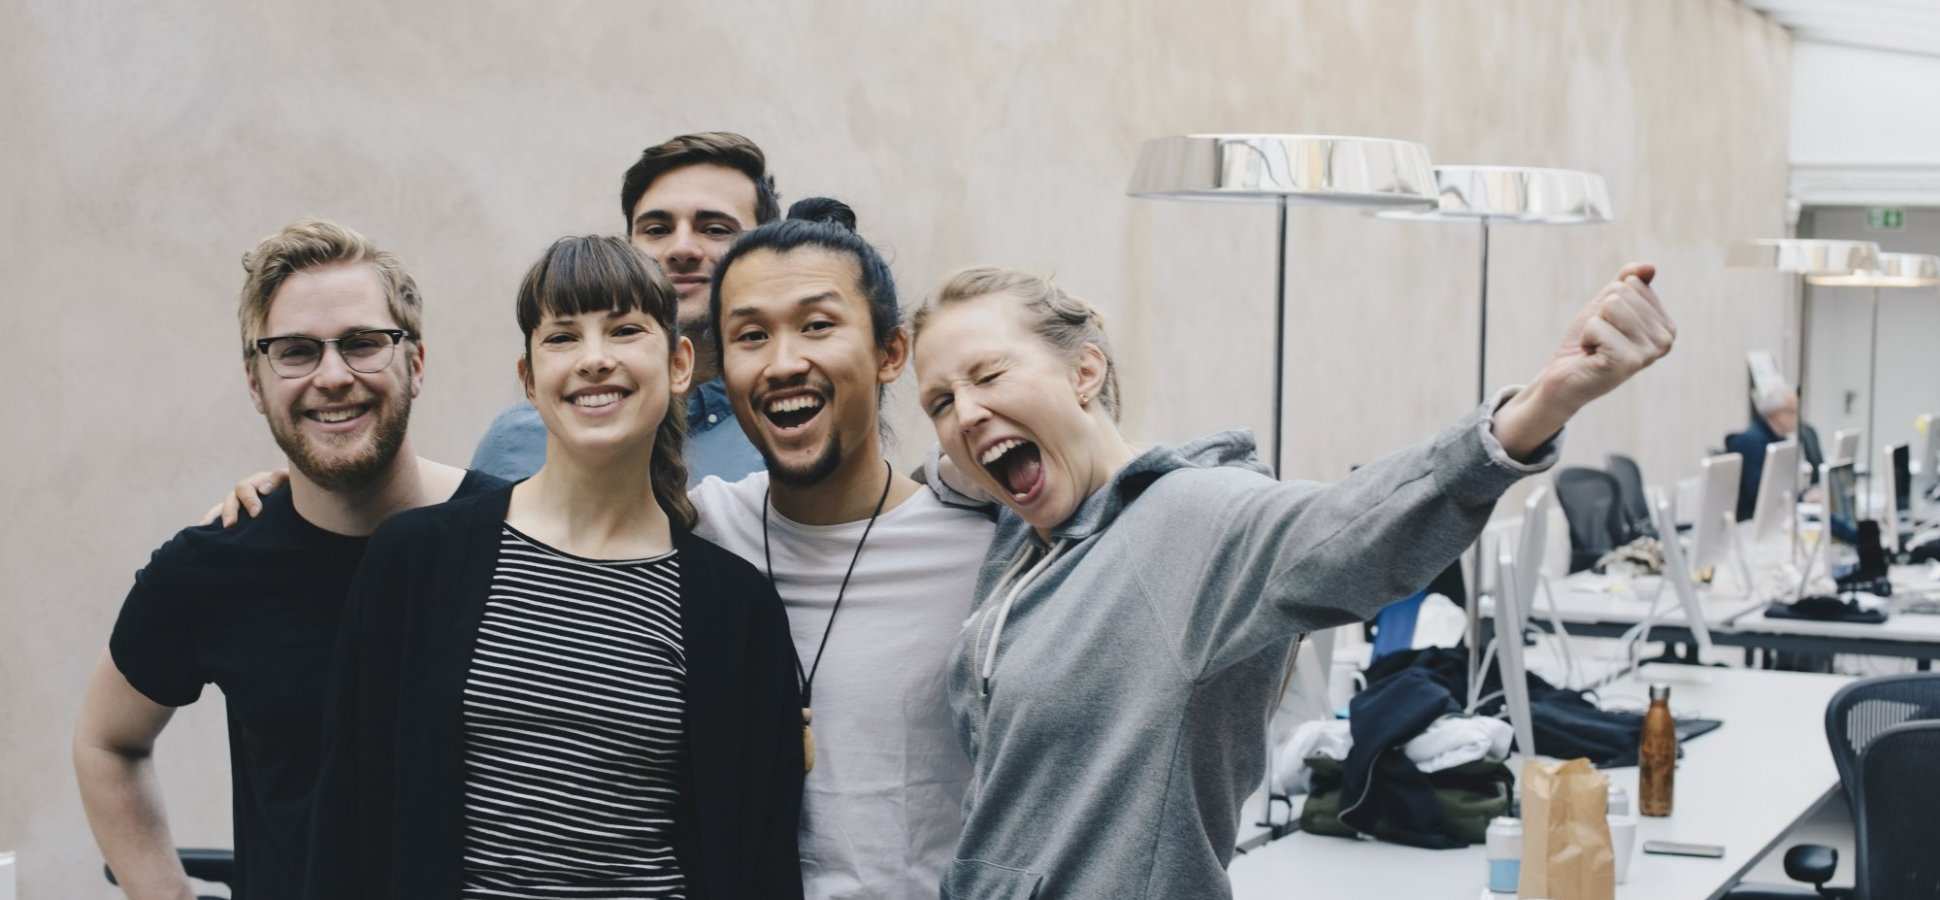 4 Secrets to Make Your Company So Good That Talent Wants to Stay